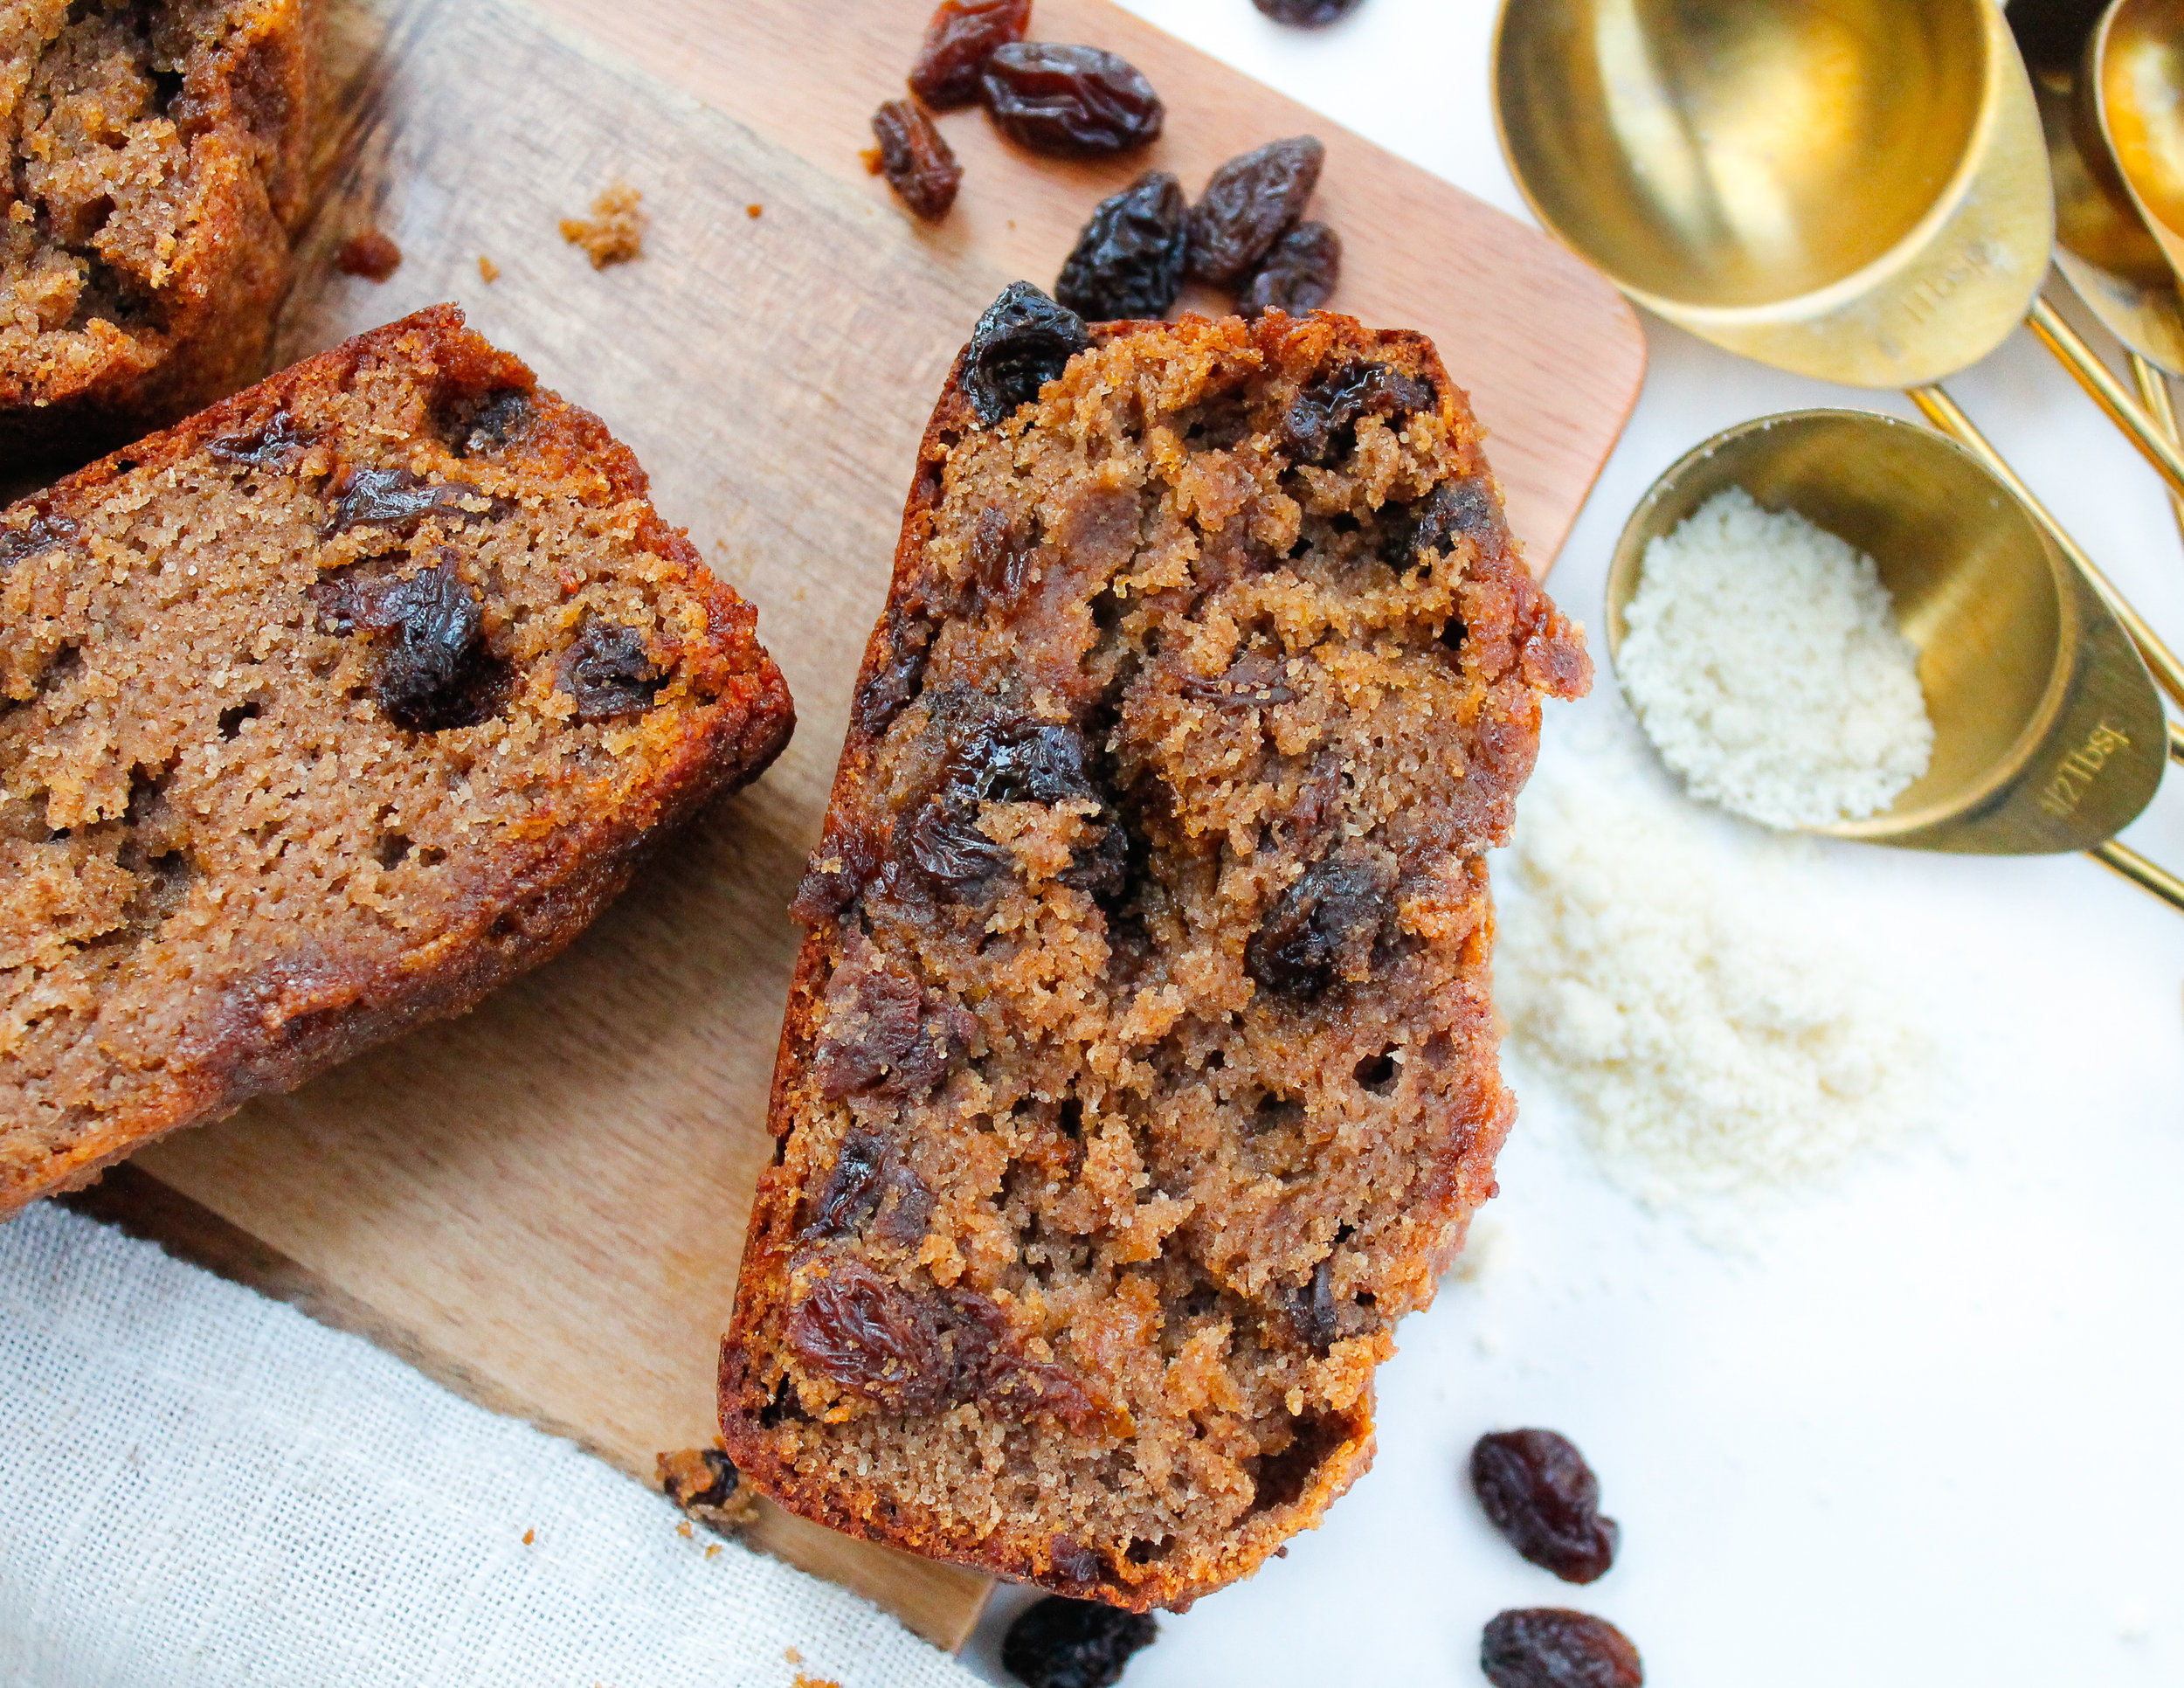 Paleo Cinnamon Raisin Bread || This paleo cinnamon raisin bread is the perfect twist on a classic favorite! It's grain free, gluten free, dairy free, refined sugar free AND Specific Carbohydrate Diet friendly. Made from wholesome, real ingredients it's perfect for any time of day. #specificcarbohydratediet #paleobaking #paleobread